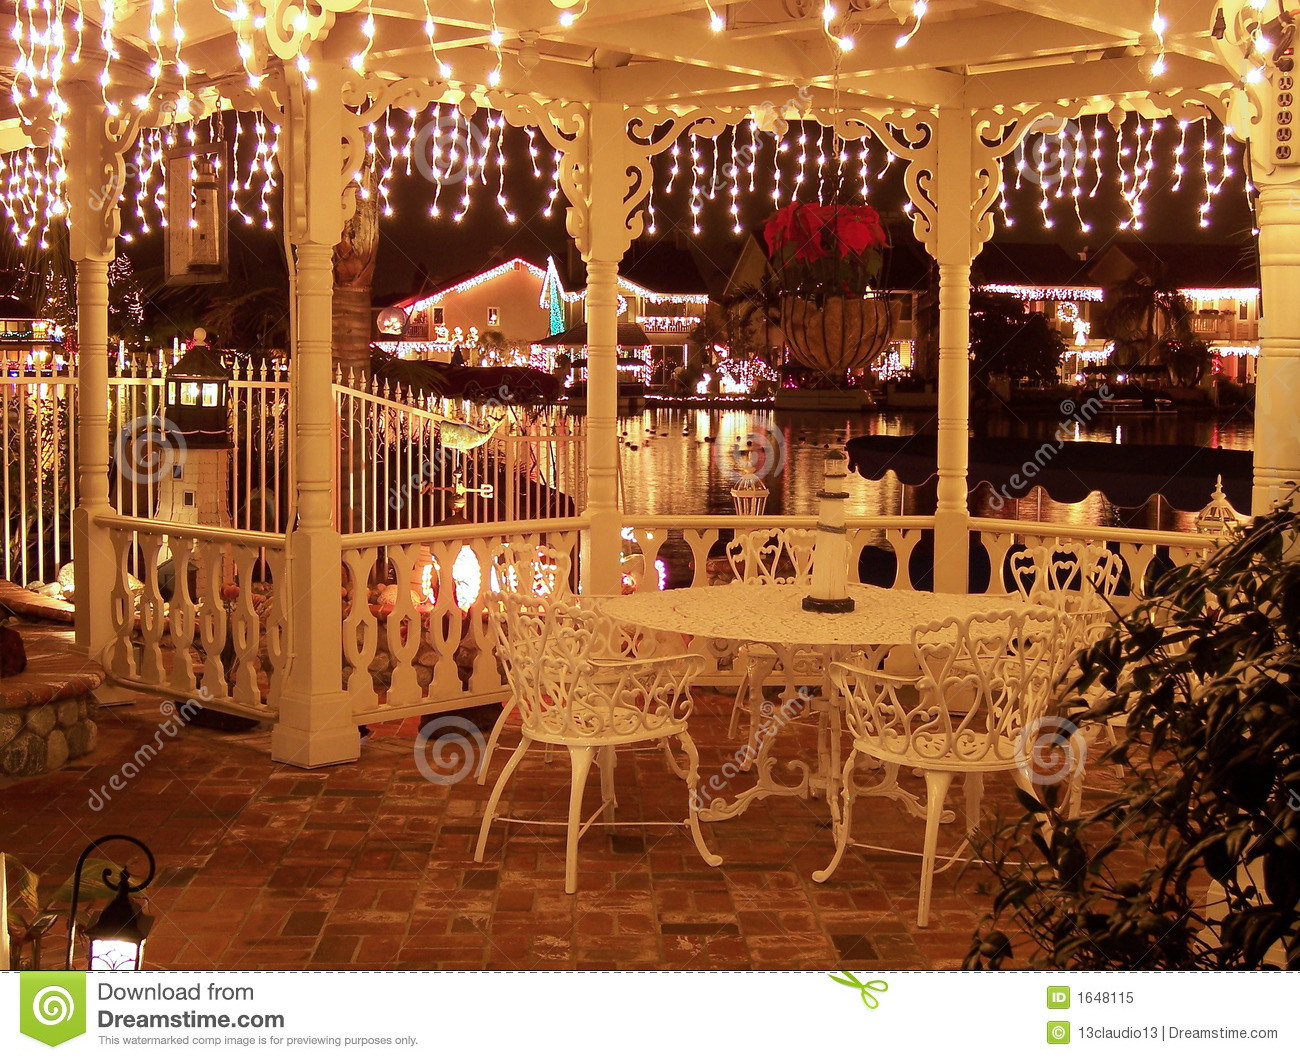 Christmas Lights Decorated Gazebo Overlooking A Reflective ...